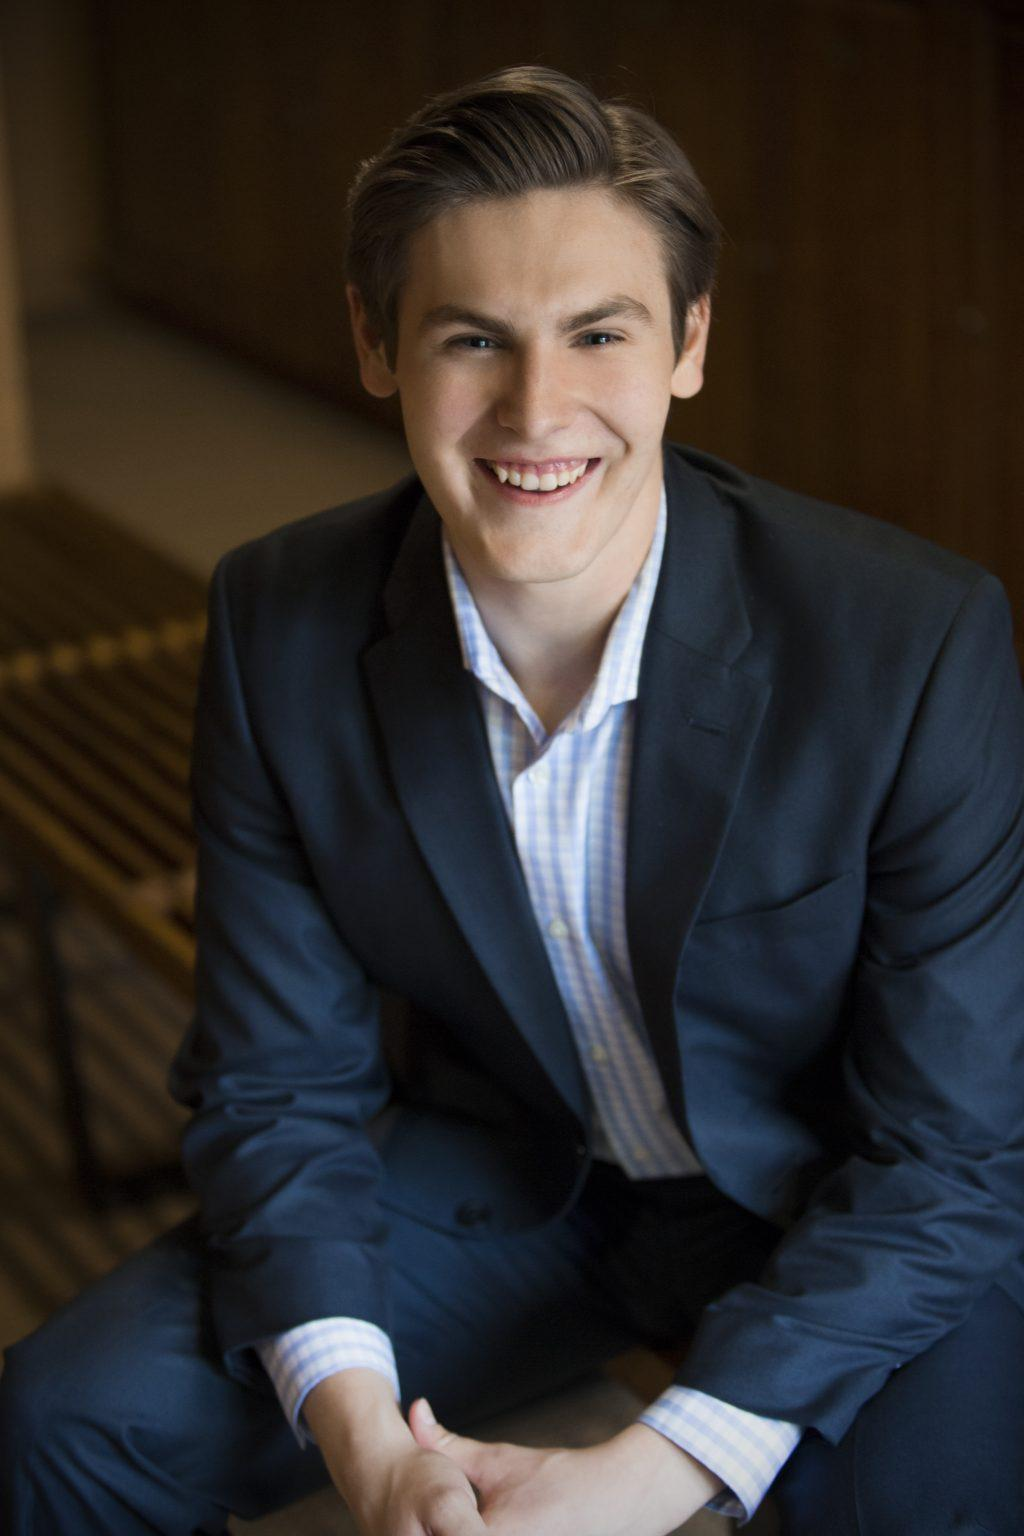 Senior Music major Liam Nixon smiles for a headshot at Taos Opera Institute in New Mexico during the summer. Nixon, a chamber choir singer, said his dream is to sing professionally, travel the world, perform opera in Europe and hopefully end up at the Met. Photo courtesy of Liam Nixon